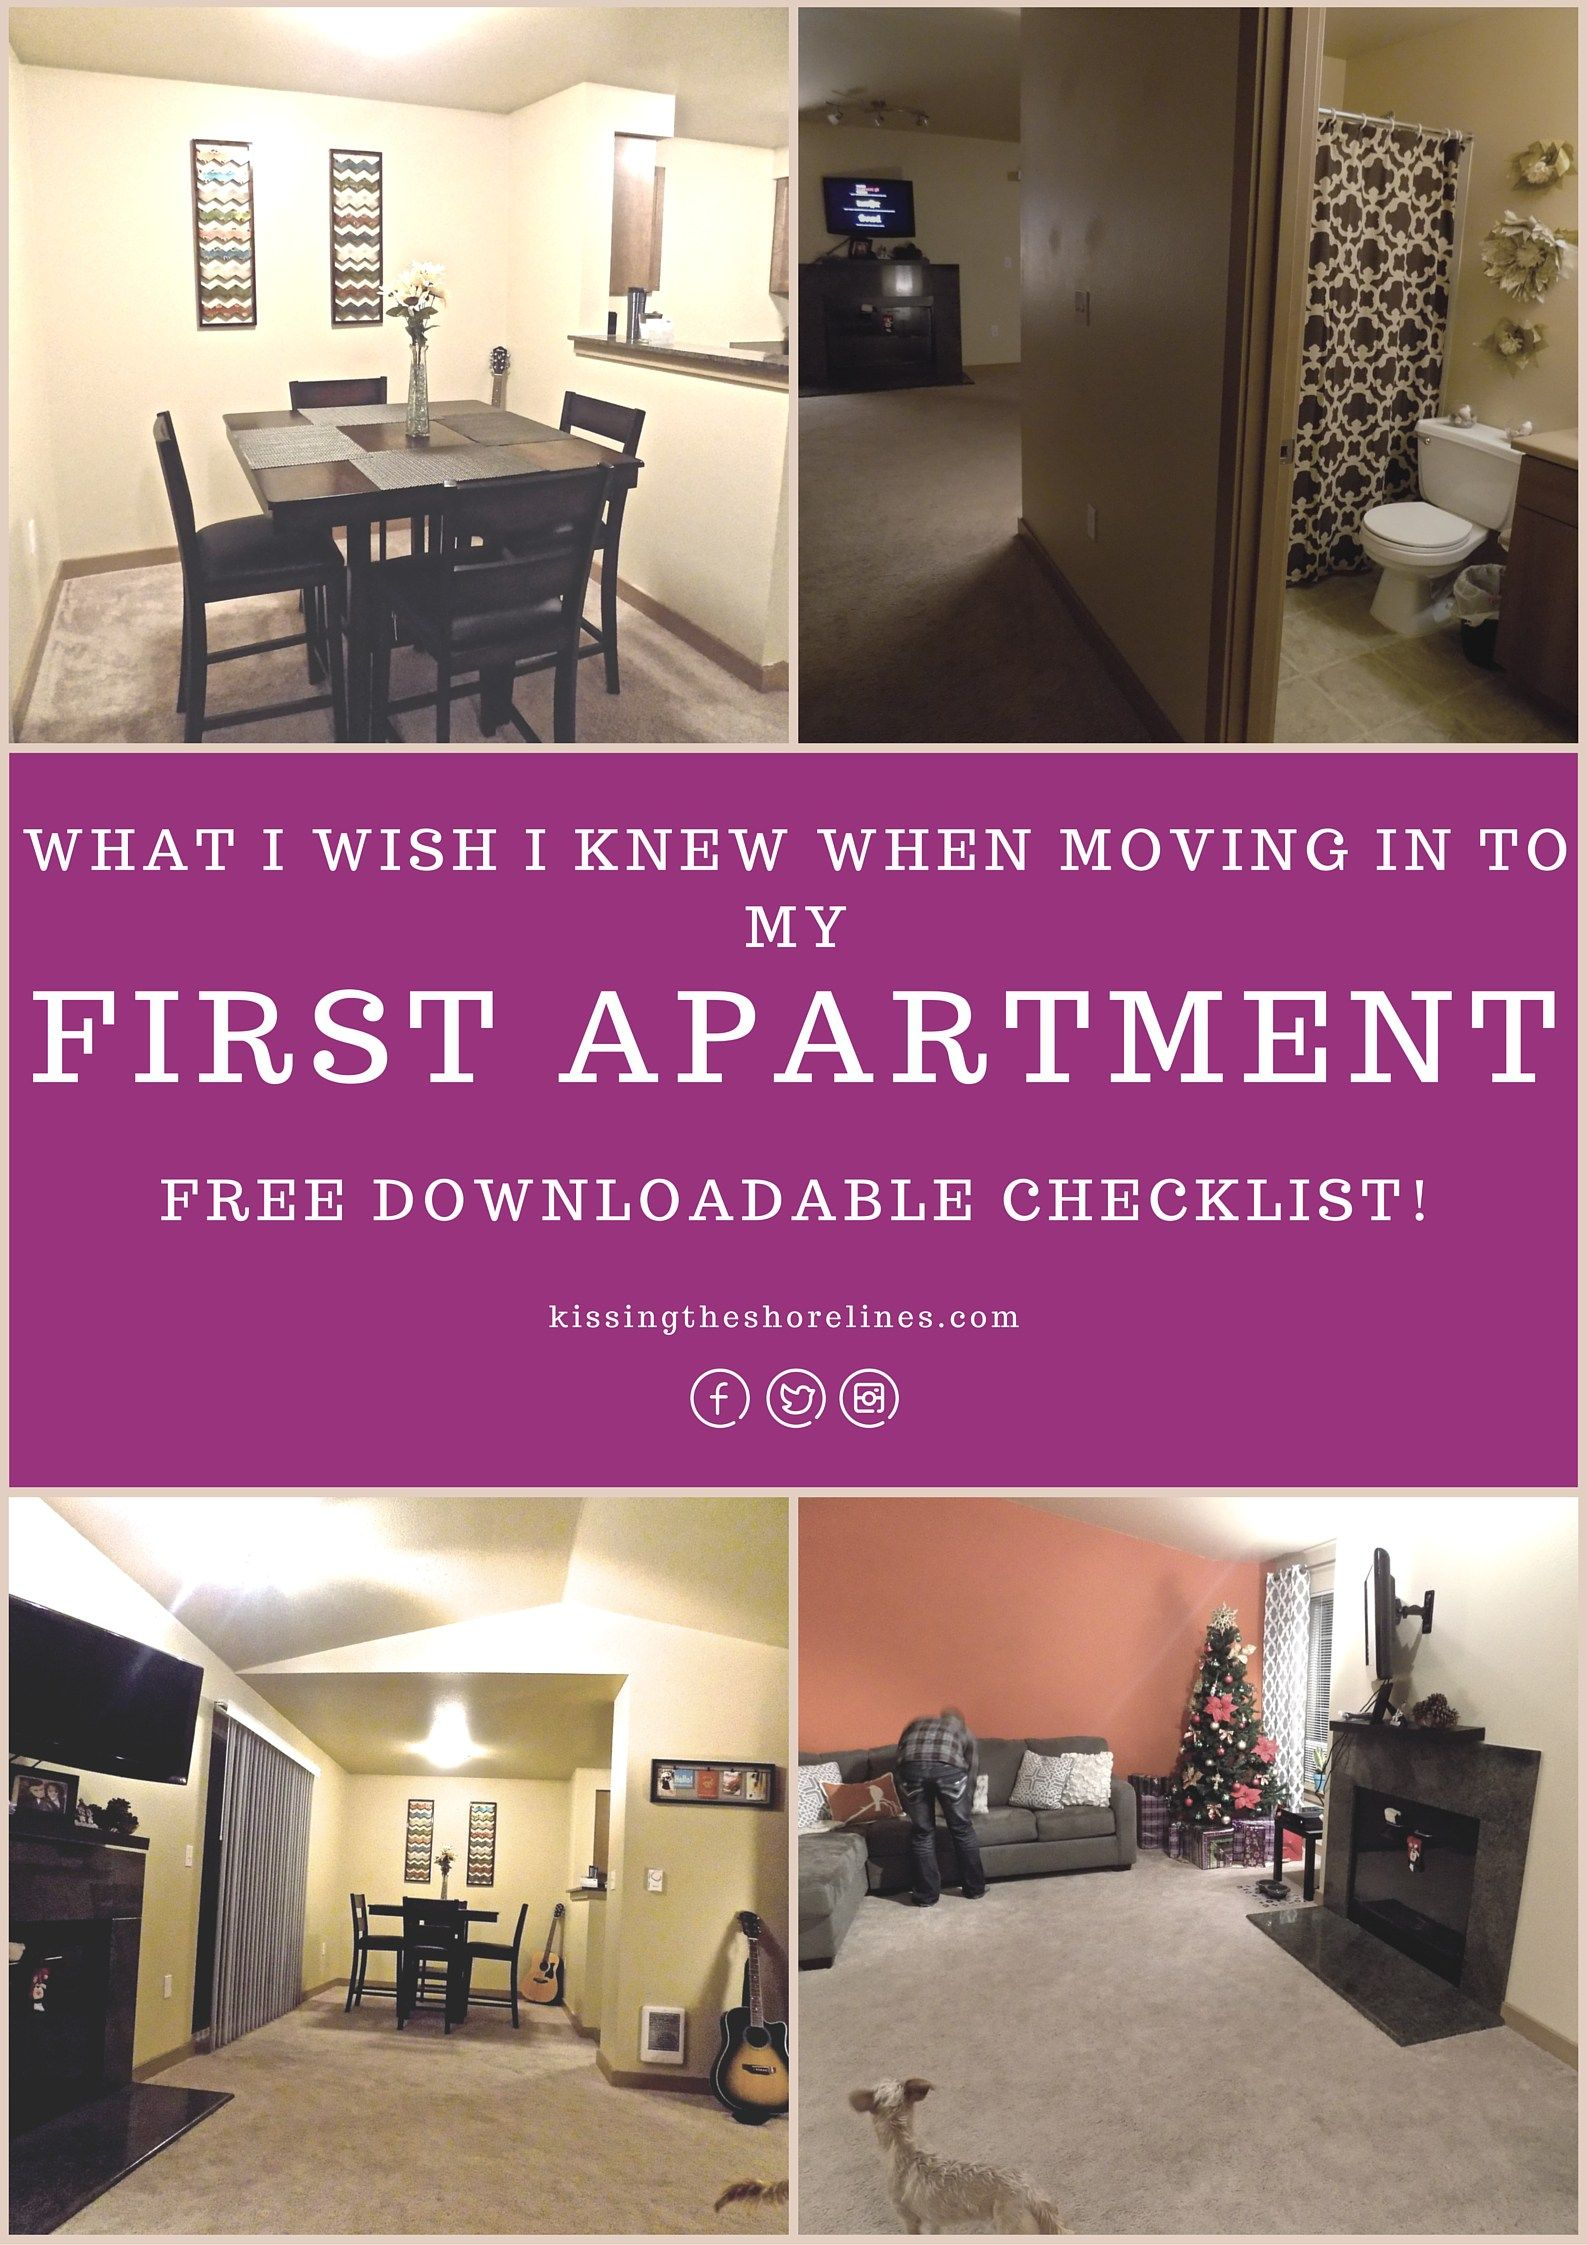 first apartment | Our first apartment | Pinterest | Apartments ...